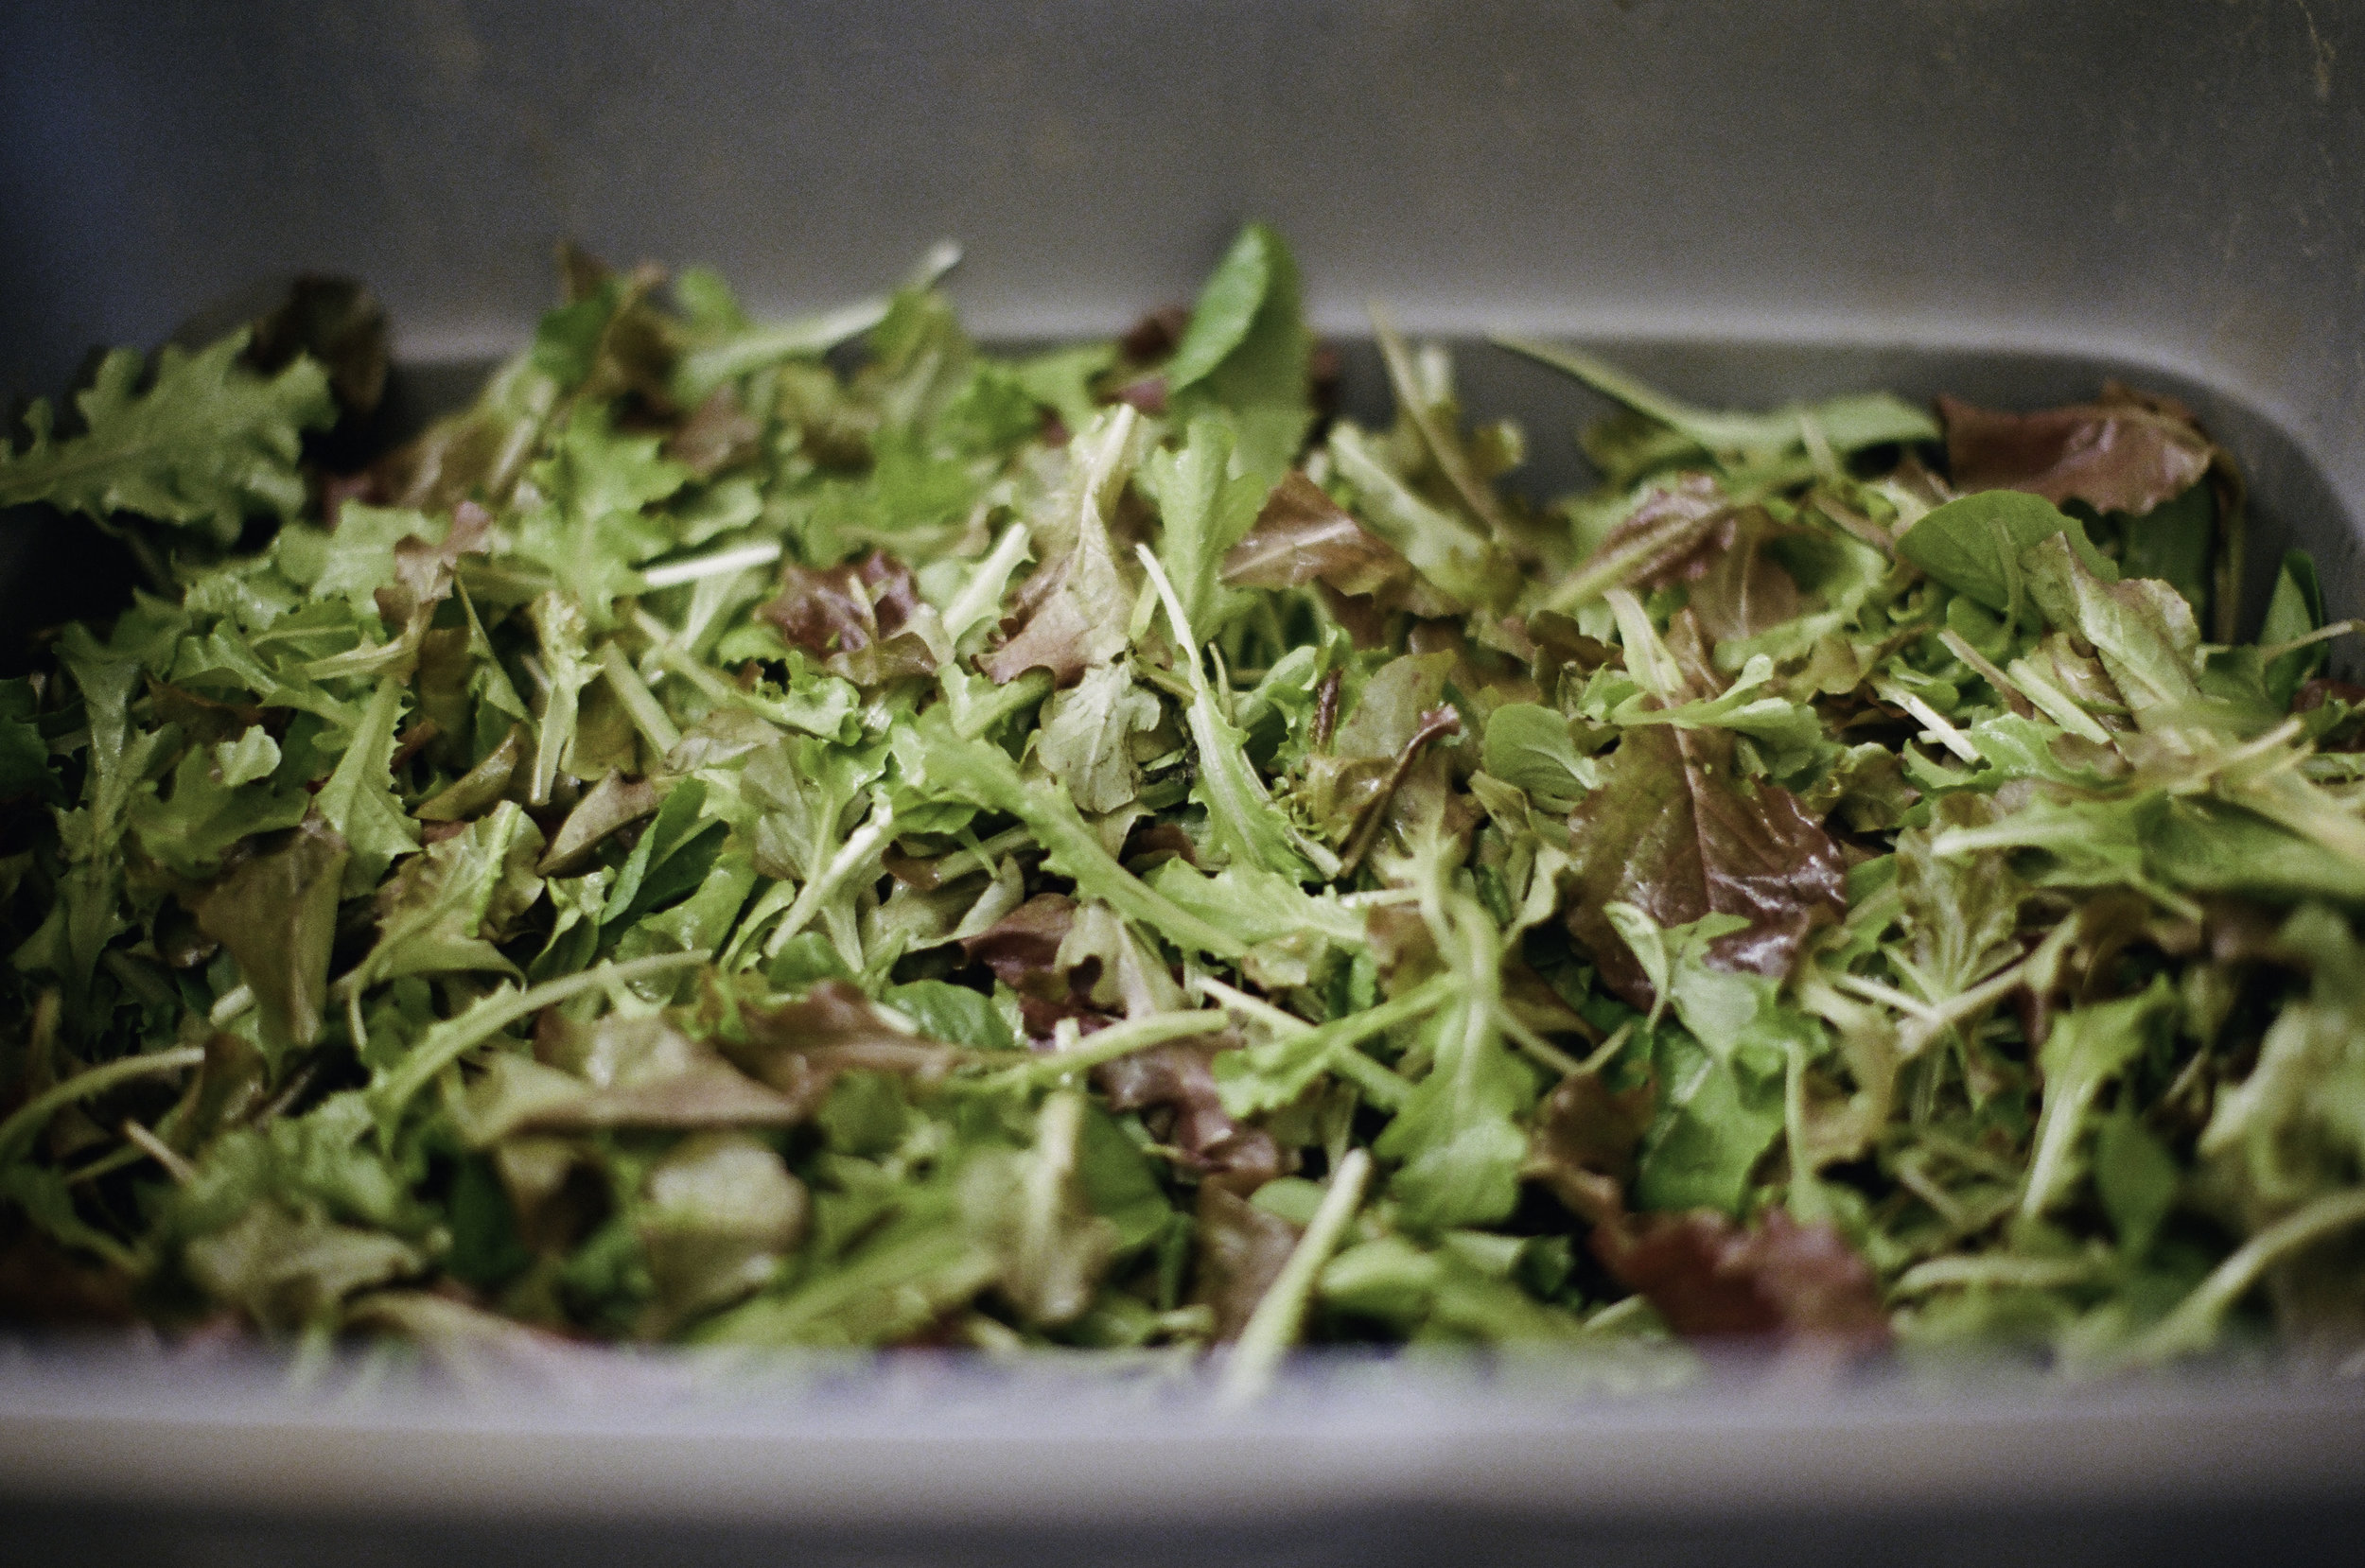 Harvested baby lettuce ready to be washed,  packed  and delivered.